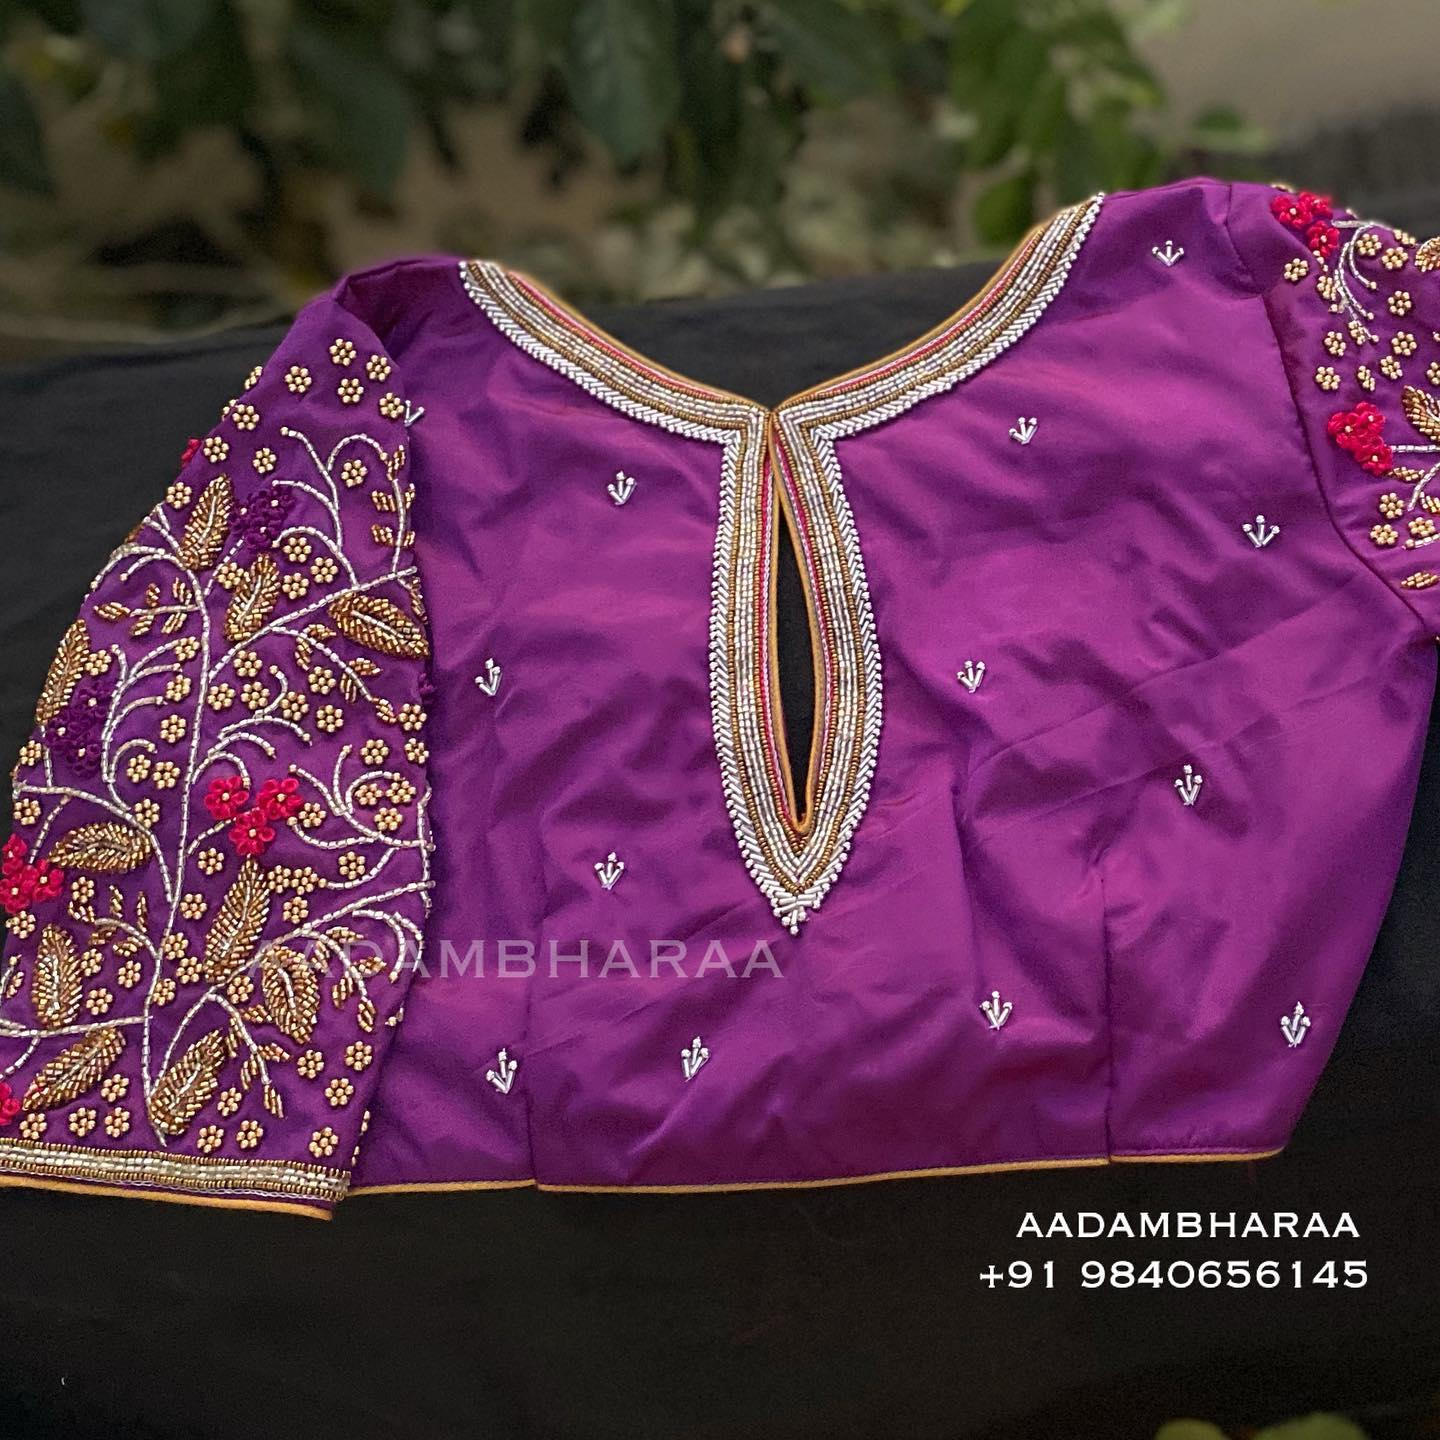 Celebrate the big moments of your life wearing Aadambharaa's unique purple blouse that is the right amount of Sparkle you need to dazzle on your special day. Gorgeous purple color designer blouse with floral buti design hand embroidery bead aari work and key hole.  2021-04-09